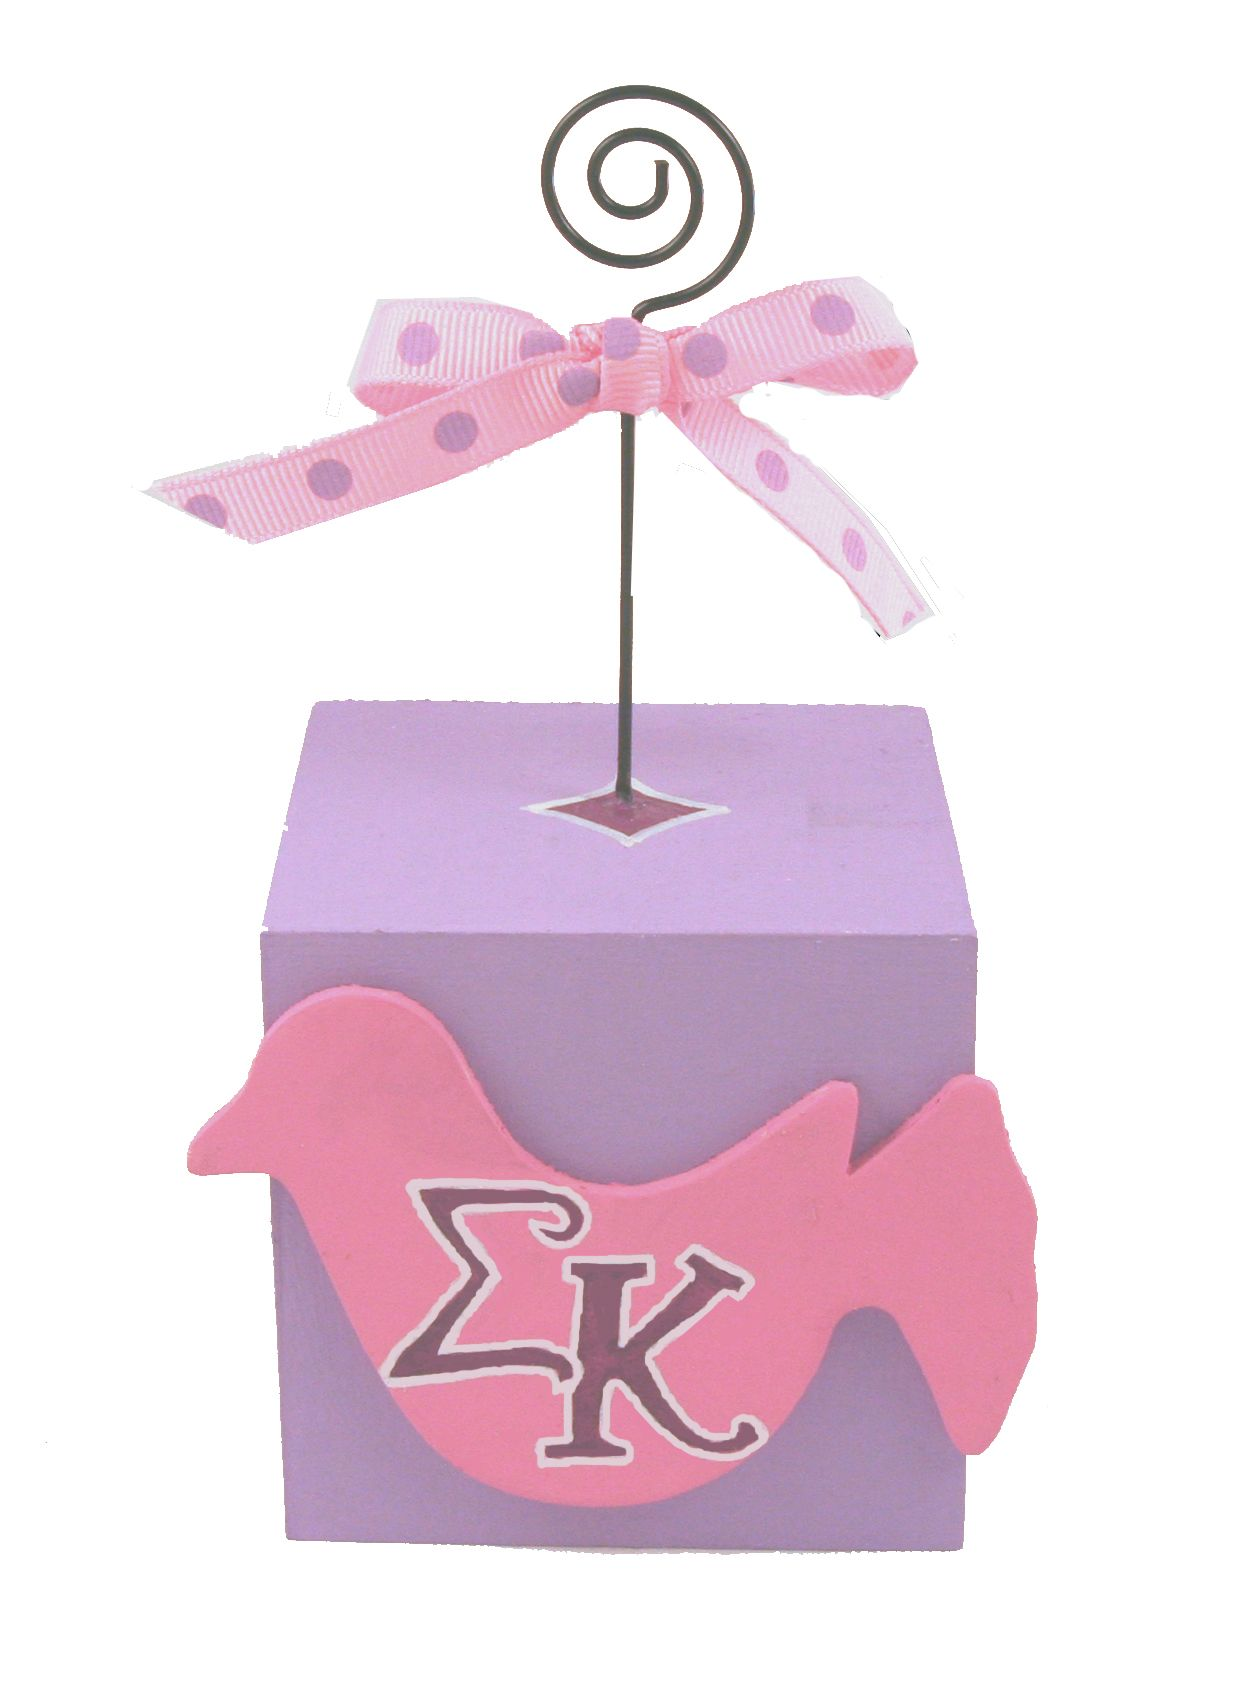 Sigma Kappa photo/note holder made using supplies and custom ...